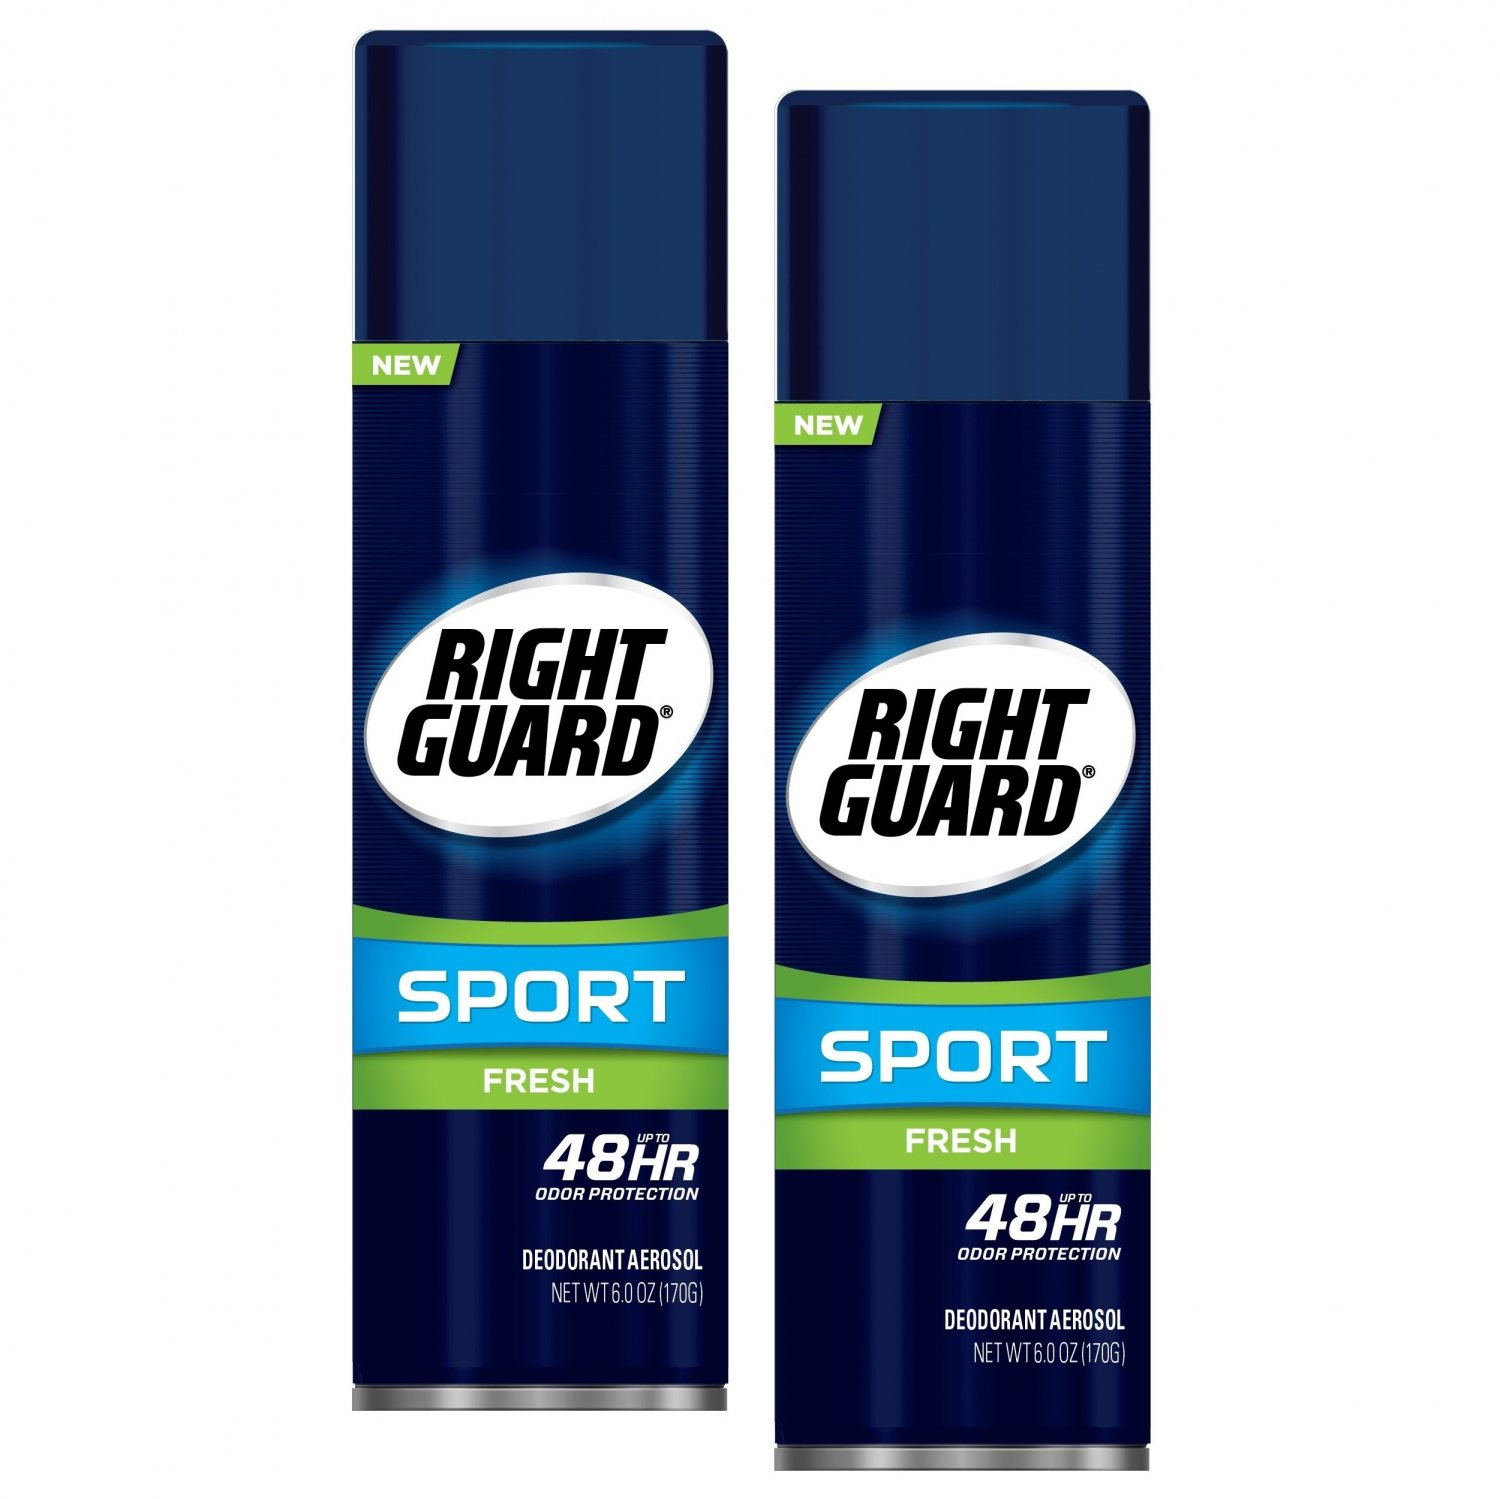 Right Guard Sport Antiperspirant Deodorant Aerosol Spray Fresh 6 Oz (2 Pack)